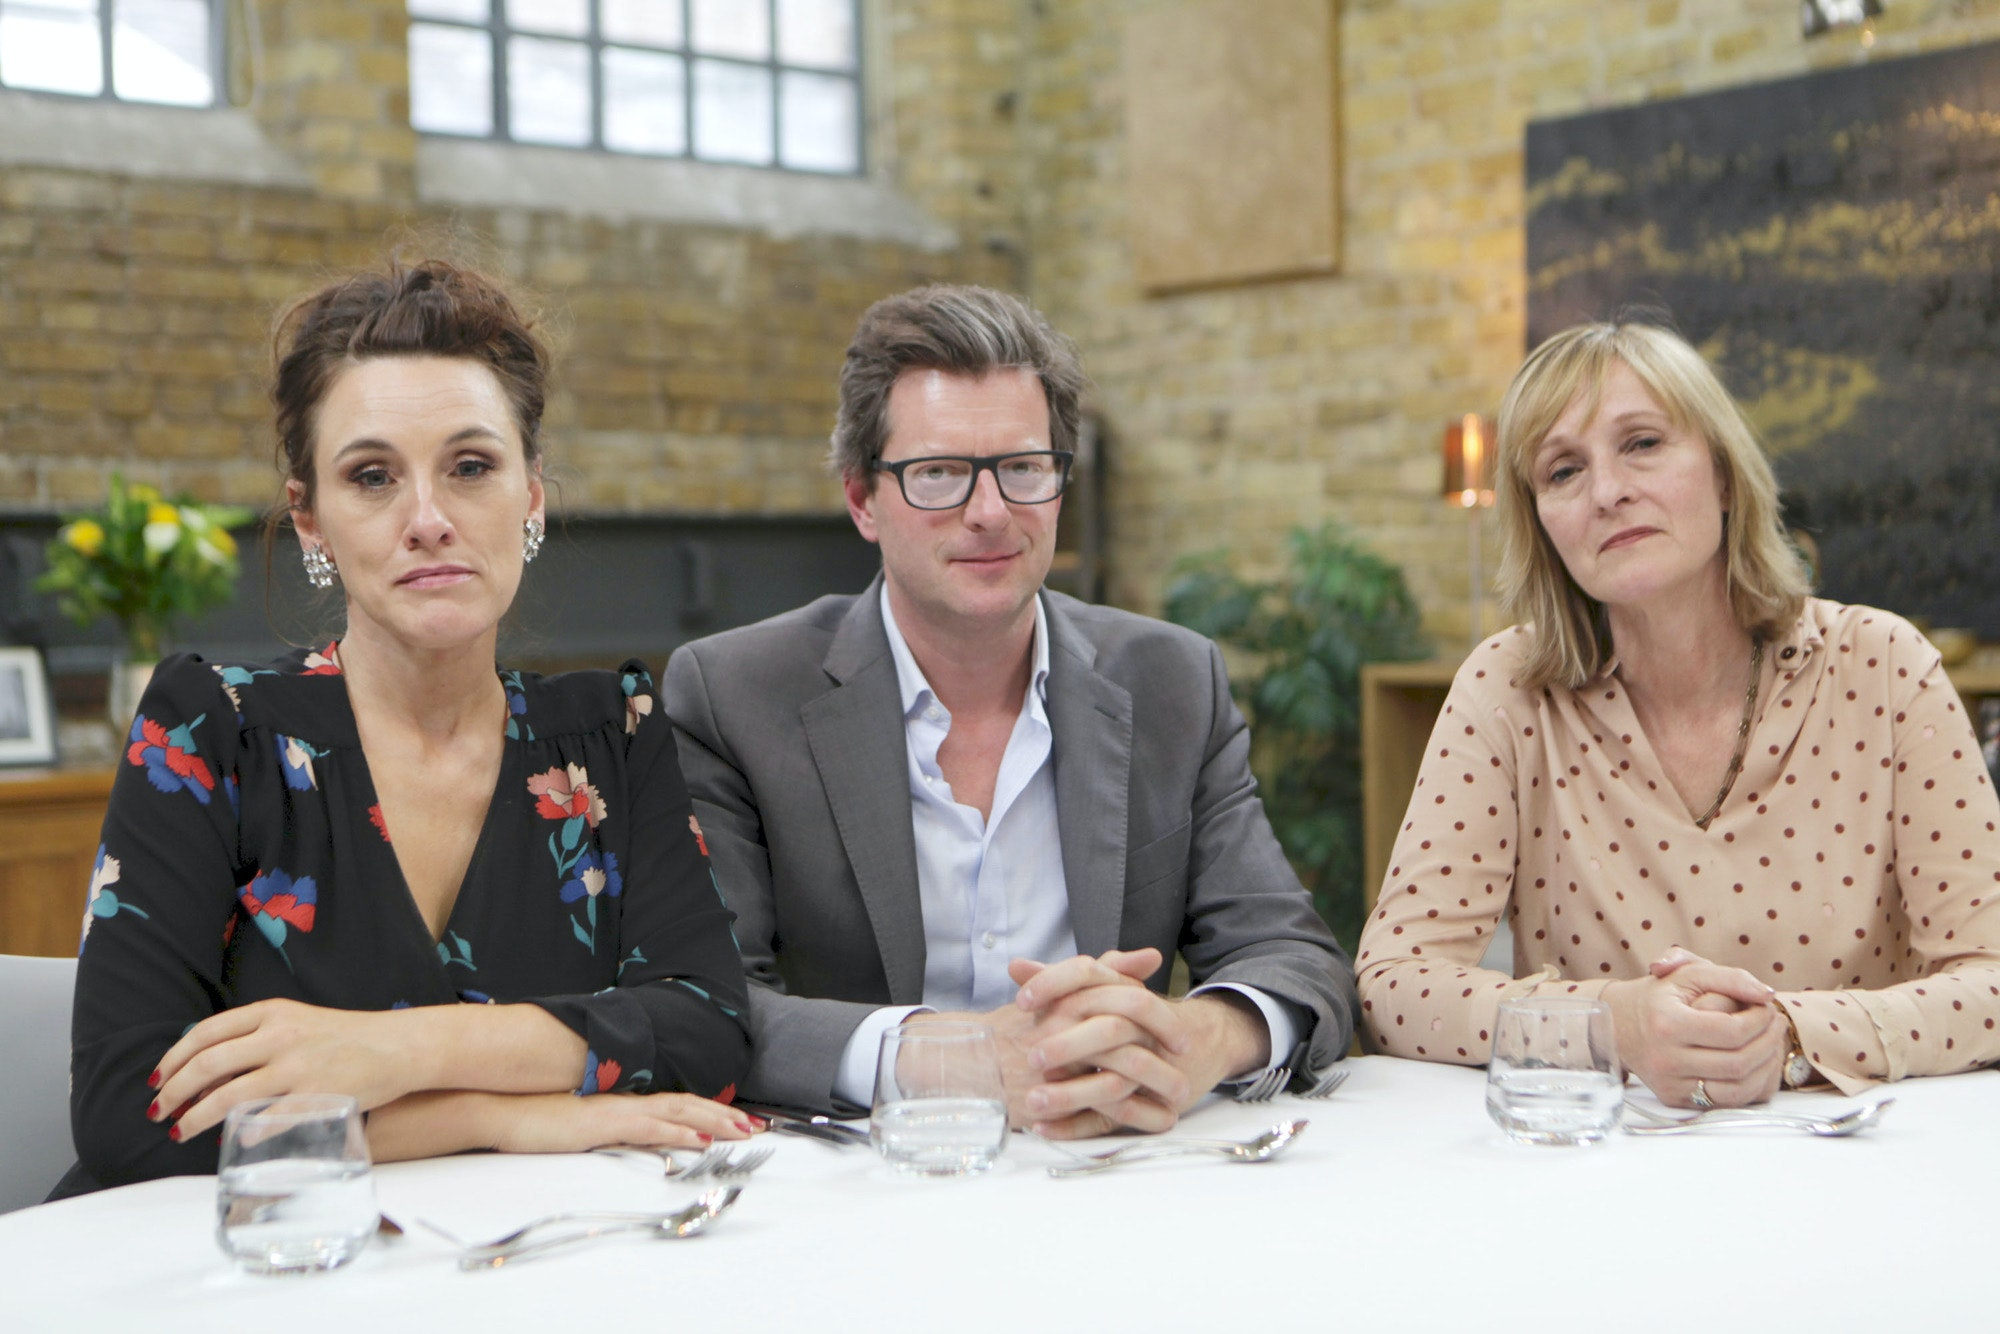 William Sitwell (c) and his fellow judges Grace Dent (l) and Tracey Macleod (r) on Masterchef the Professionals